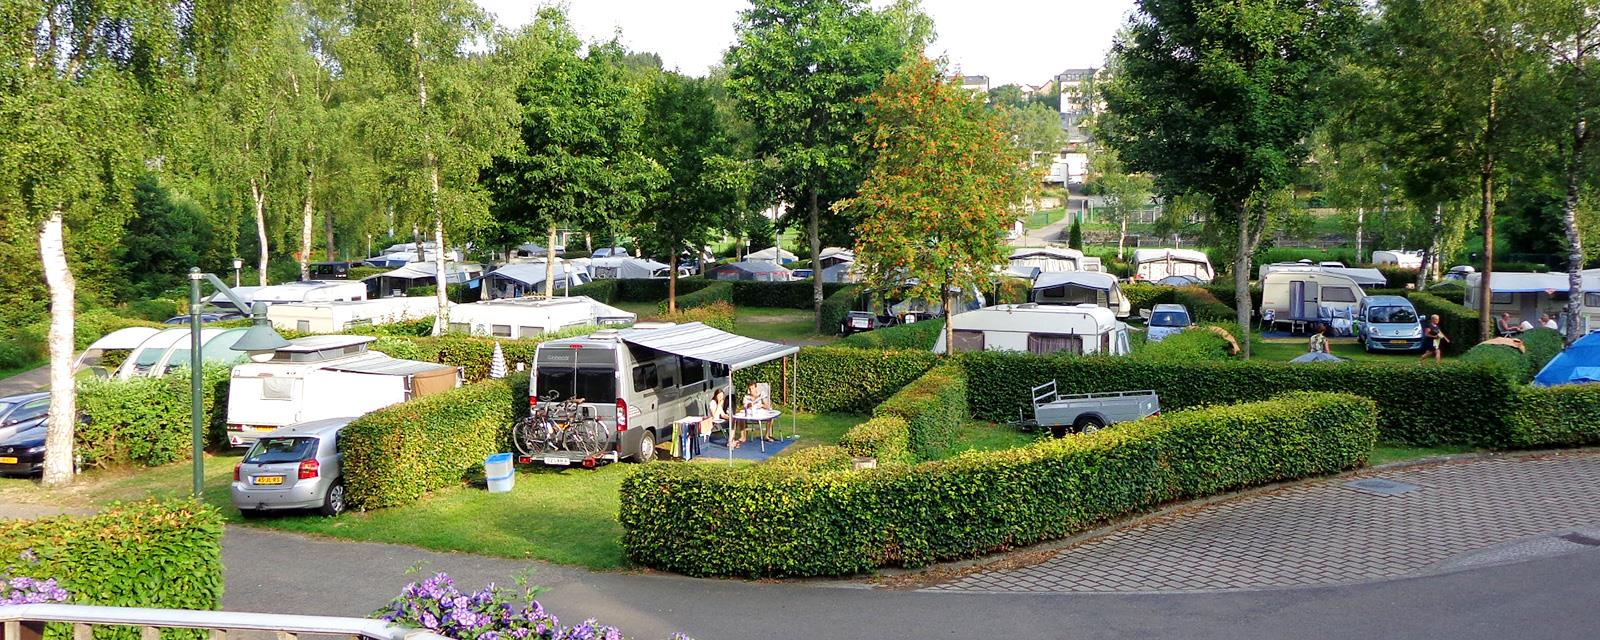 A modern campsite in the heart of the natural parks of the Luxembourg Ardennes